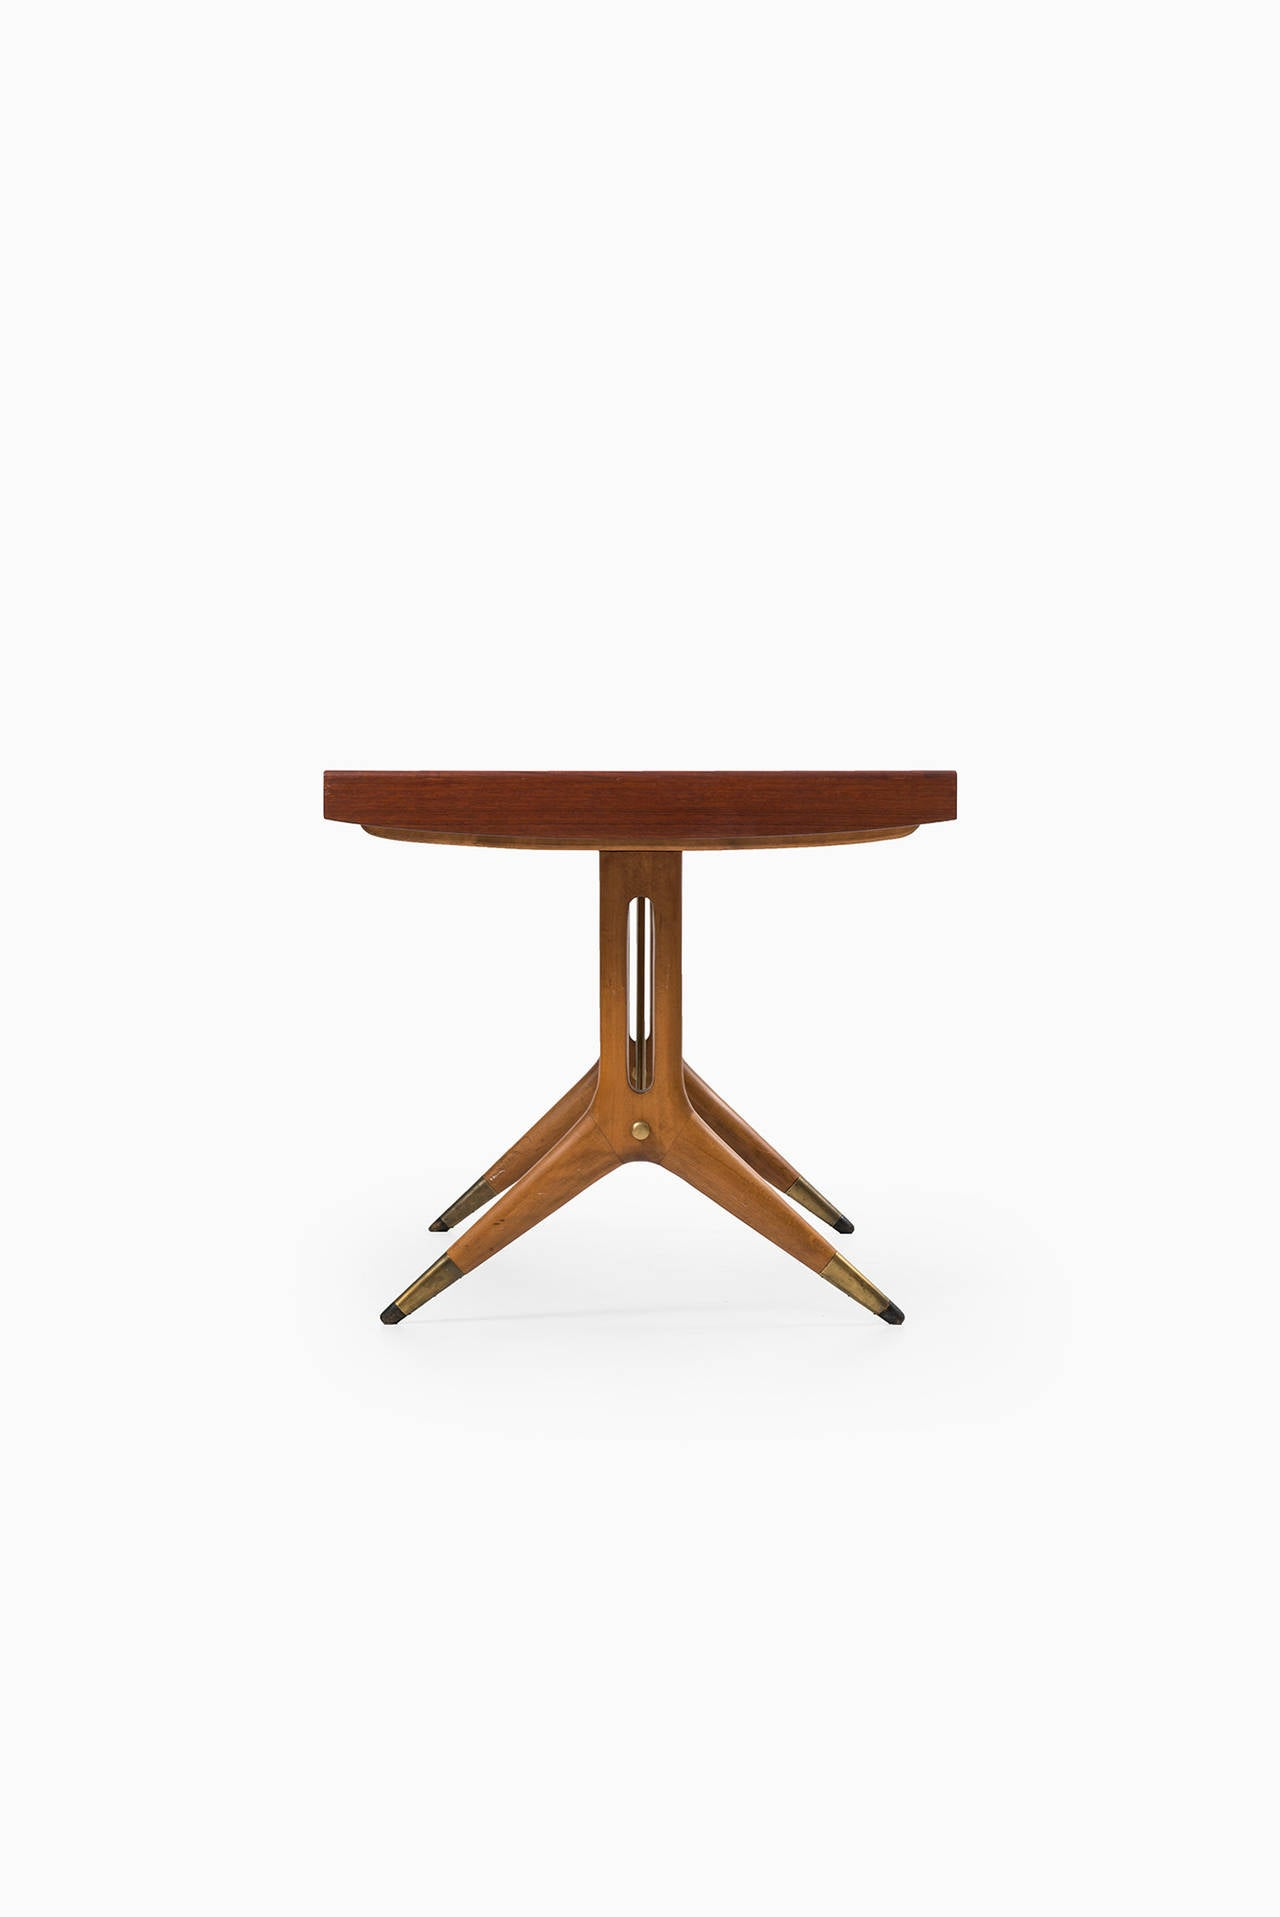 Mid Century Modern David Rosén Napoli Dining Table By Nordiska Kompaniet In Sweden For